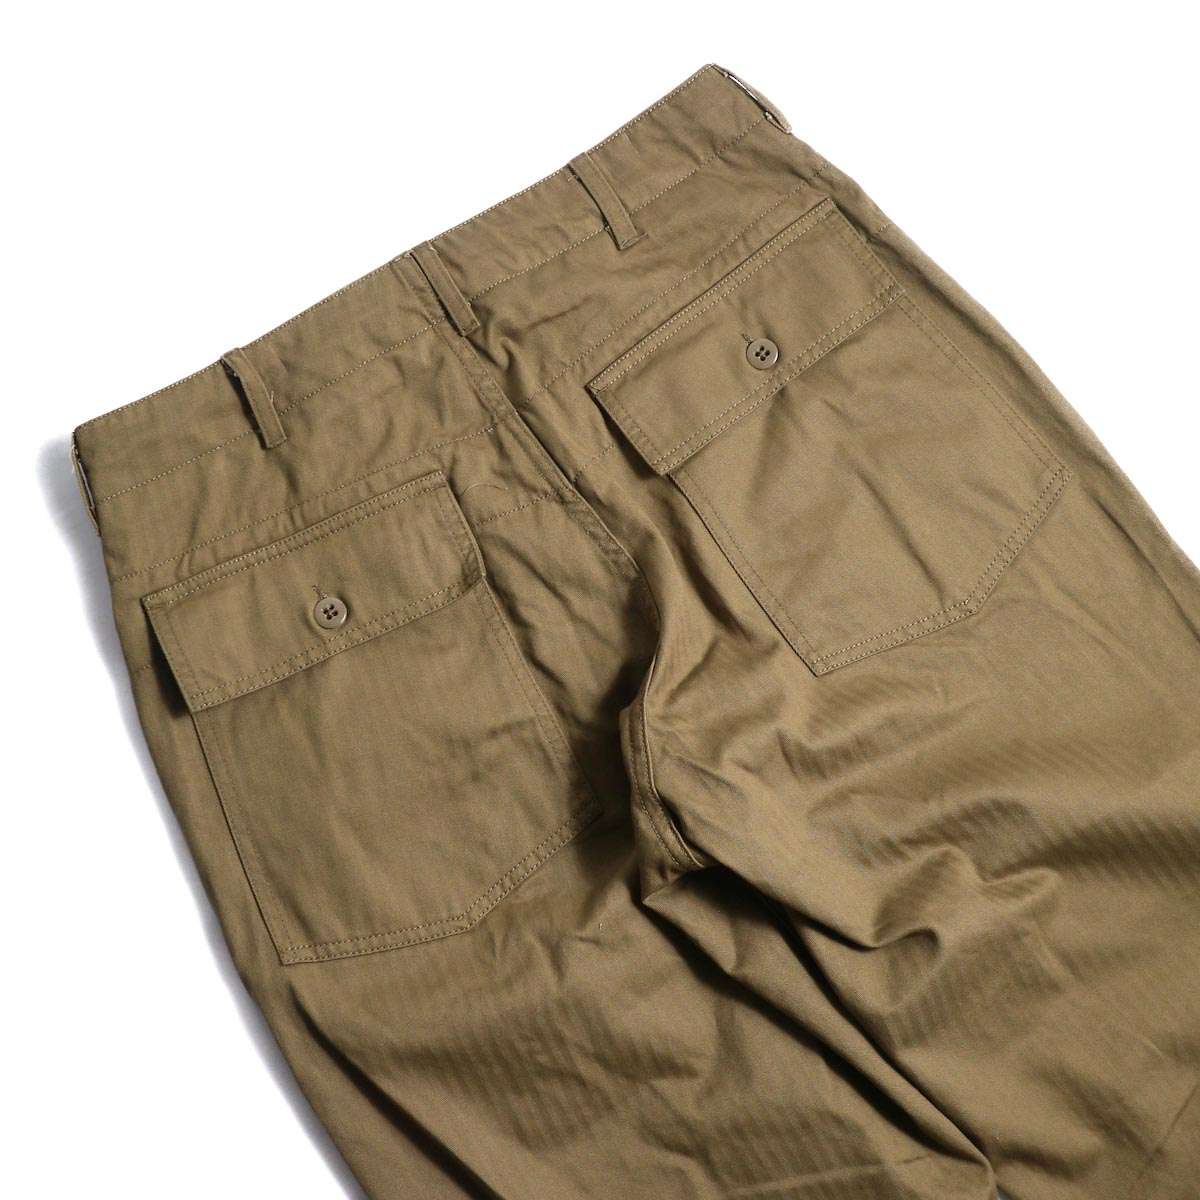 ENGINEERED GARMENTS / Fatigue Pant-HB Twill (Brown)ヒップポケット